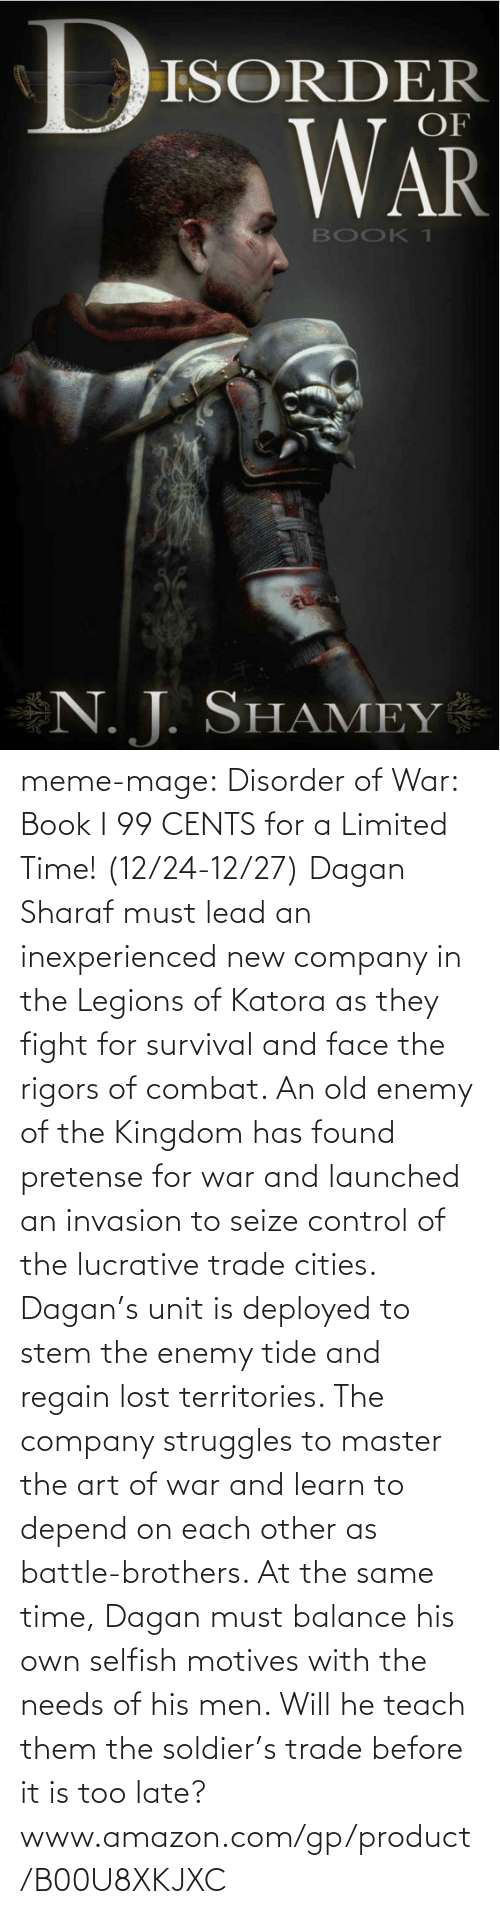 pretense: ISORDER  OF  WAR  BOOK T  N. T. SHAMEY meme-mage:    Disorder of War: Book I     99 CENTS for a Limited Time! (12/24-12/27)   Dagan Sharaf must lead an inexperienced new company in the Legions of Katora as they fight for survival and face the rigors of combat. An old enemy of the Kingdom has found pretense for war and launched an invasion to seize control of the lucrative trade cities. Dagan's unit is deployed to stem the enemy tide and regain lost territories. The company struggles to master the art of war and learn to depend on each other as battle-brothers. At the same time, Dagan must balance his own selfish motives with the needs of his men. Will he teach them the soldier's trade before it is too late?     www.amazon.com/gp/product/B00U8XKJXC